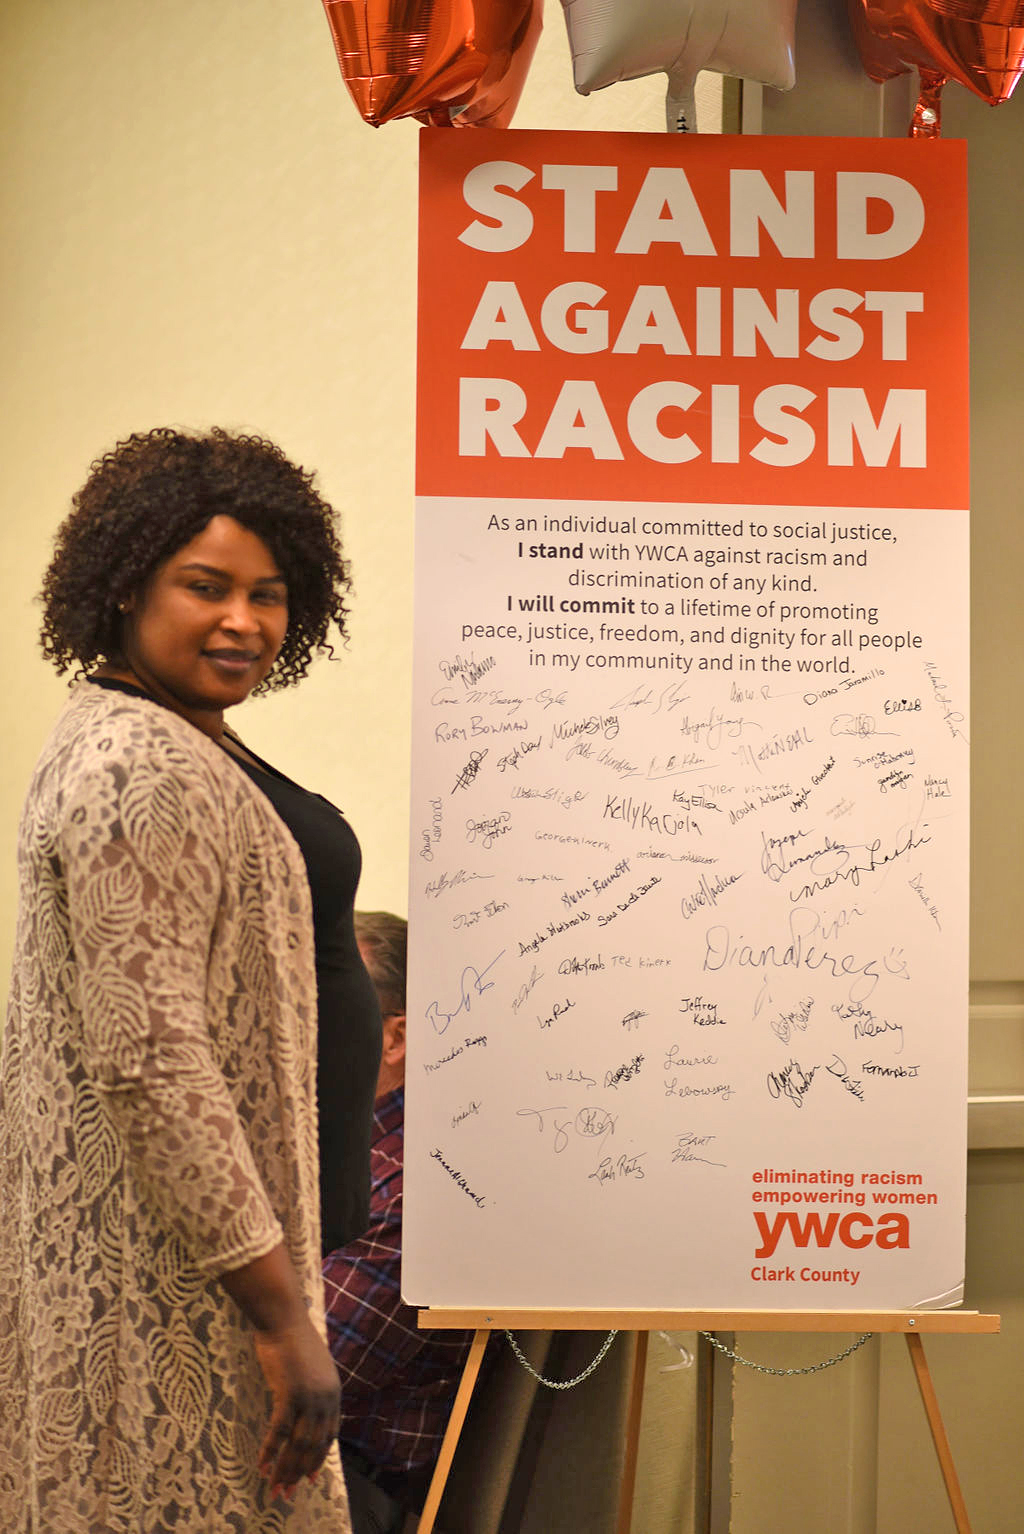 Signatures of those taking a stand against racism